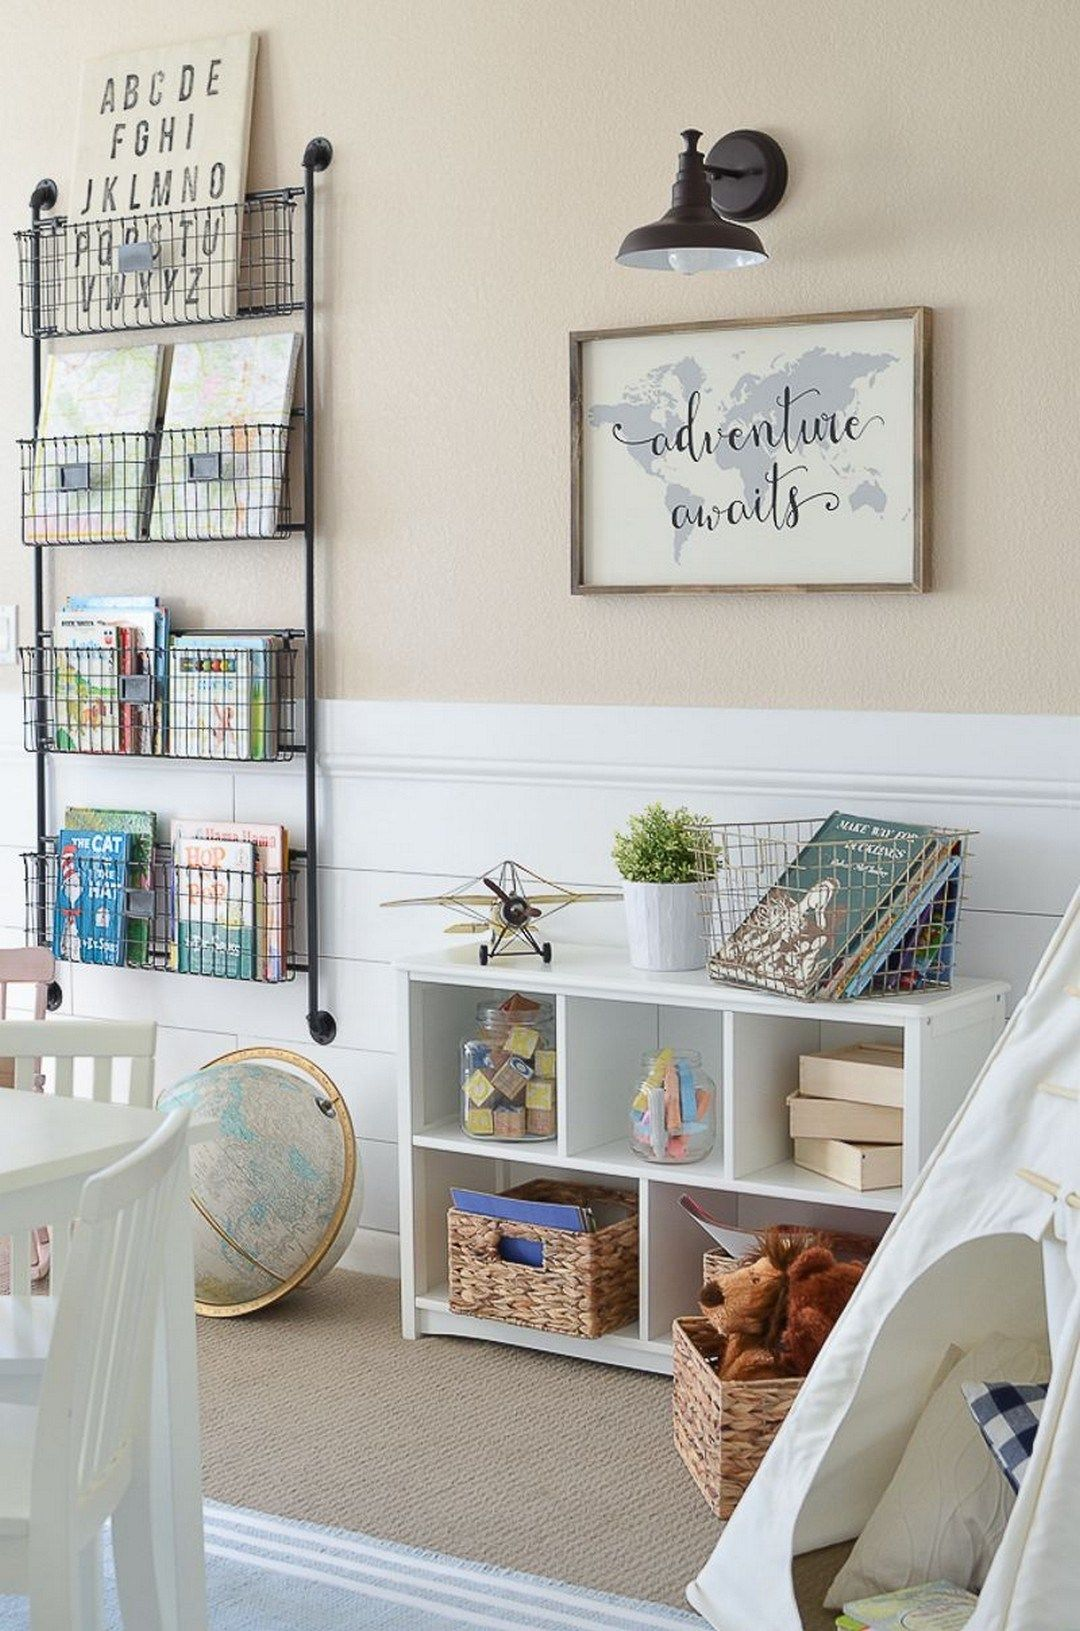 23 Playroom Decor Solutions For Your Kids (5) - Possible Decor